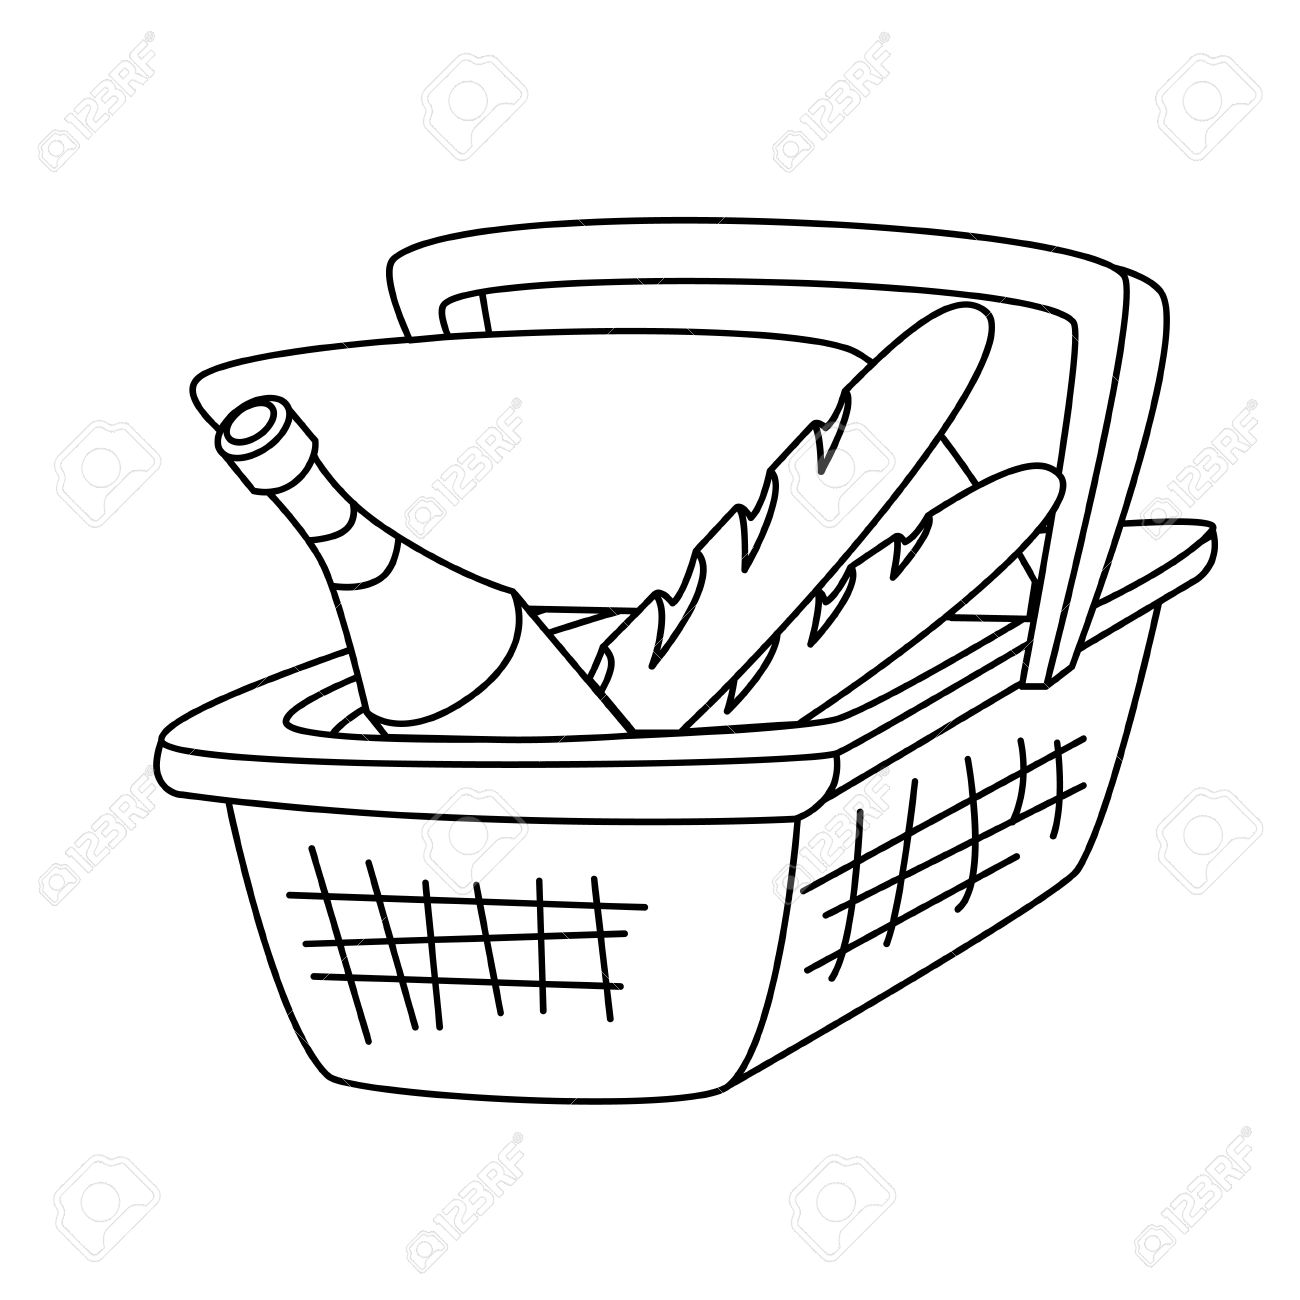 1300x1300 Picnic Basket With A Bottle Of Wine And A Loaf Of Bread Royalty